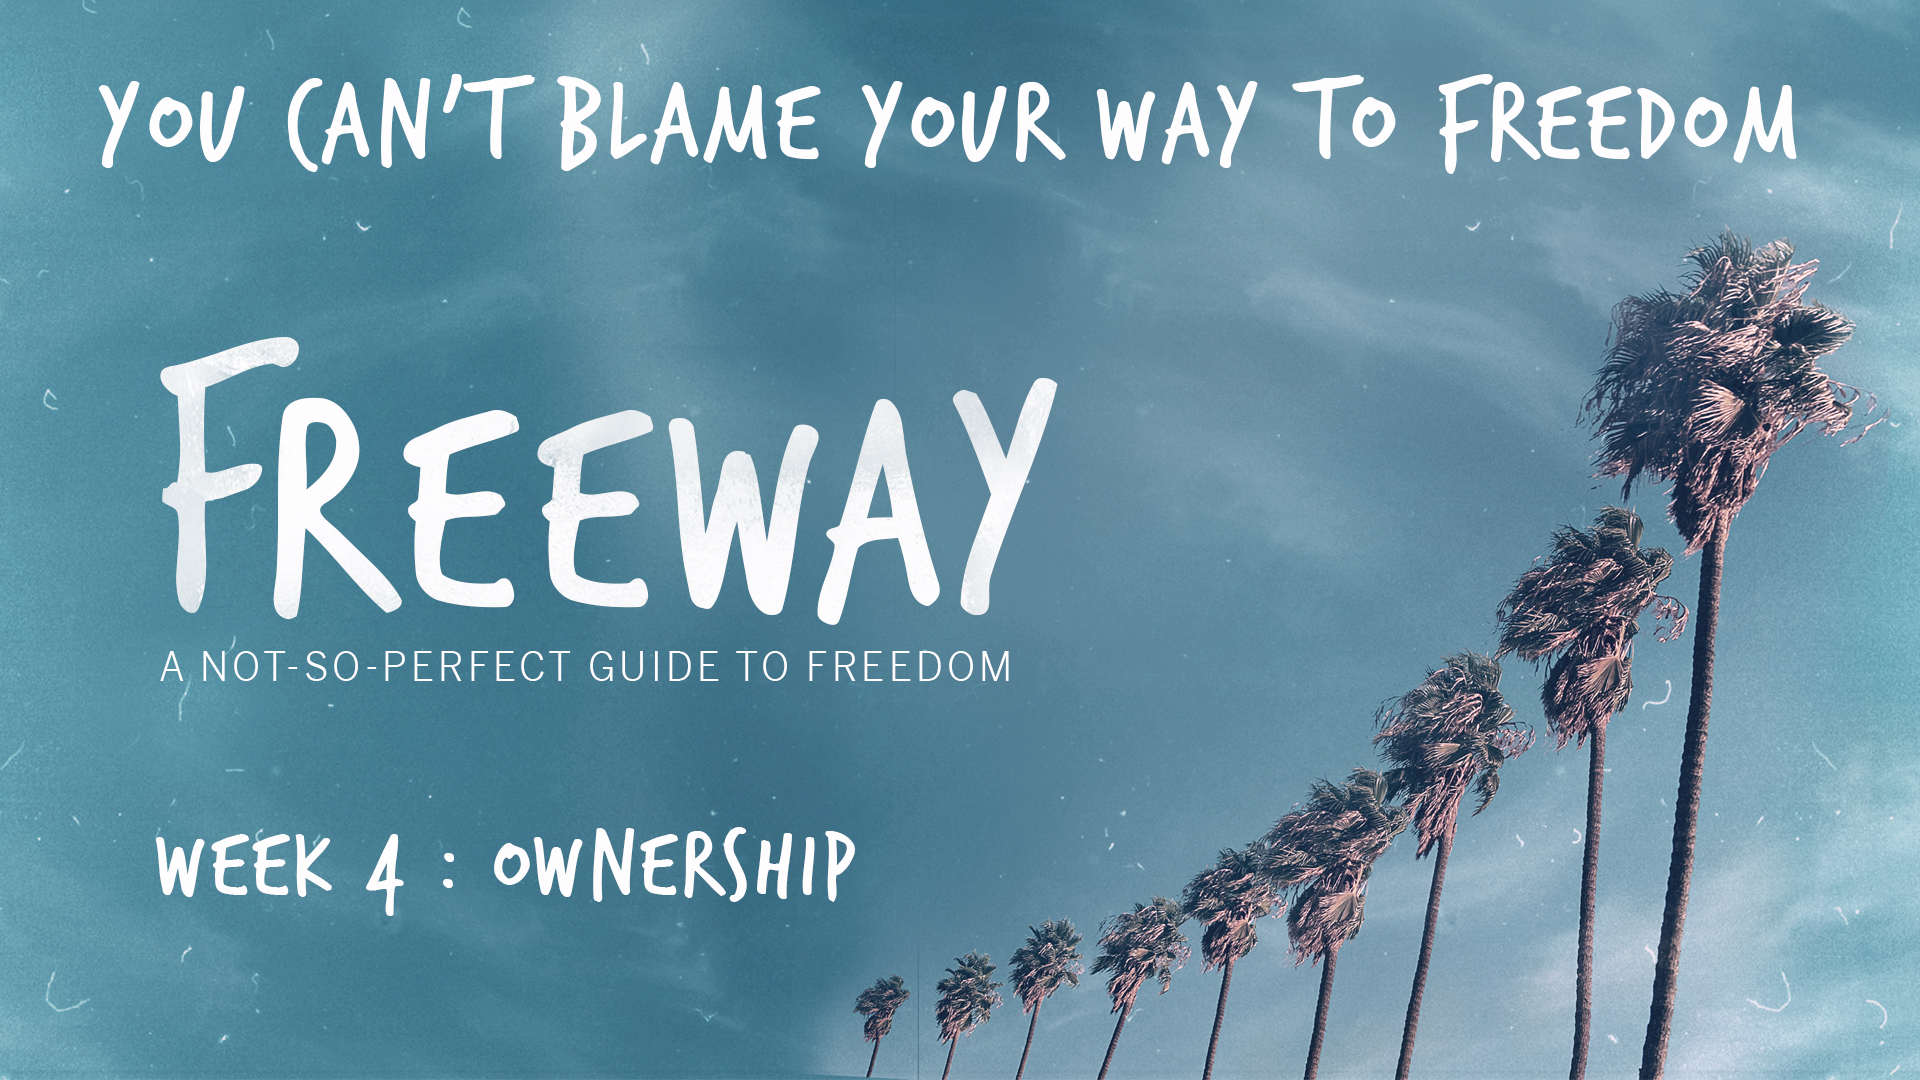 Ownership - You Can't Blame Your Way To Freedom